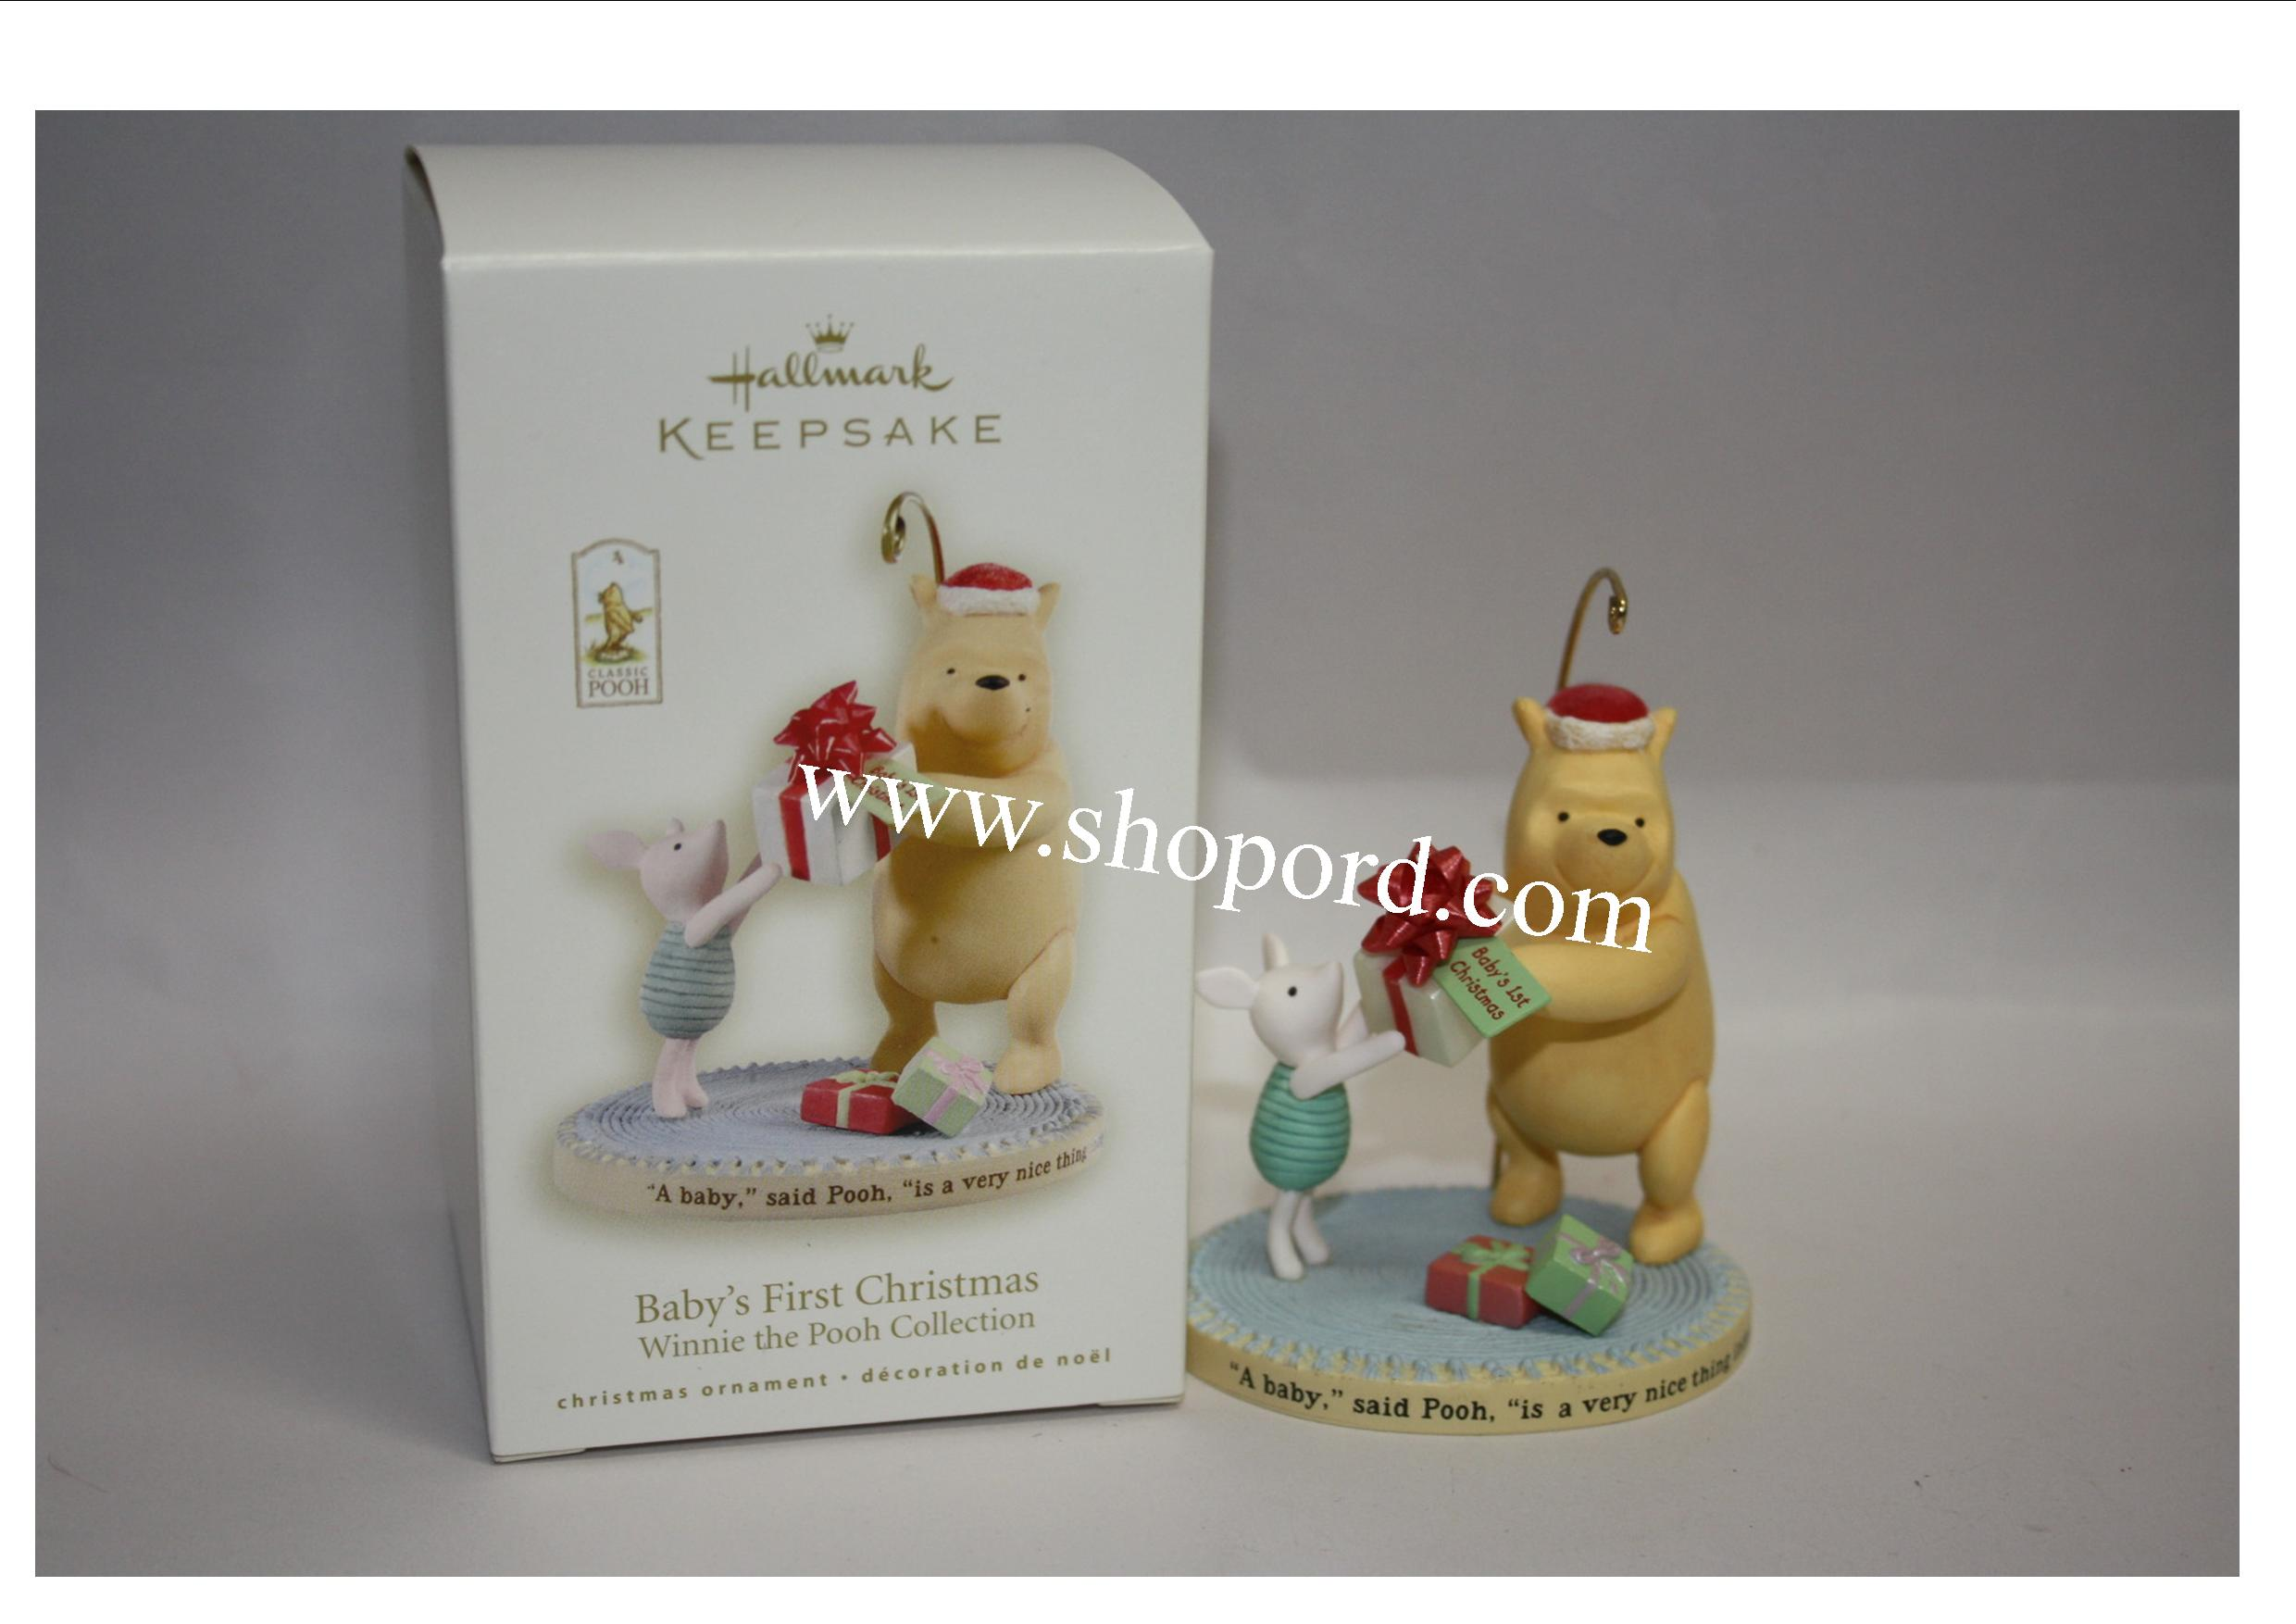 Hallmark 2008 Babys First Christmas Ornament Winnie the Pooh Collection QXD6121